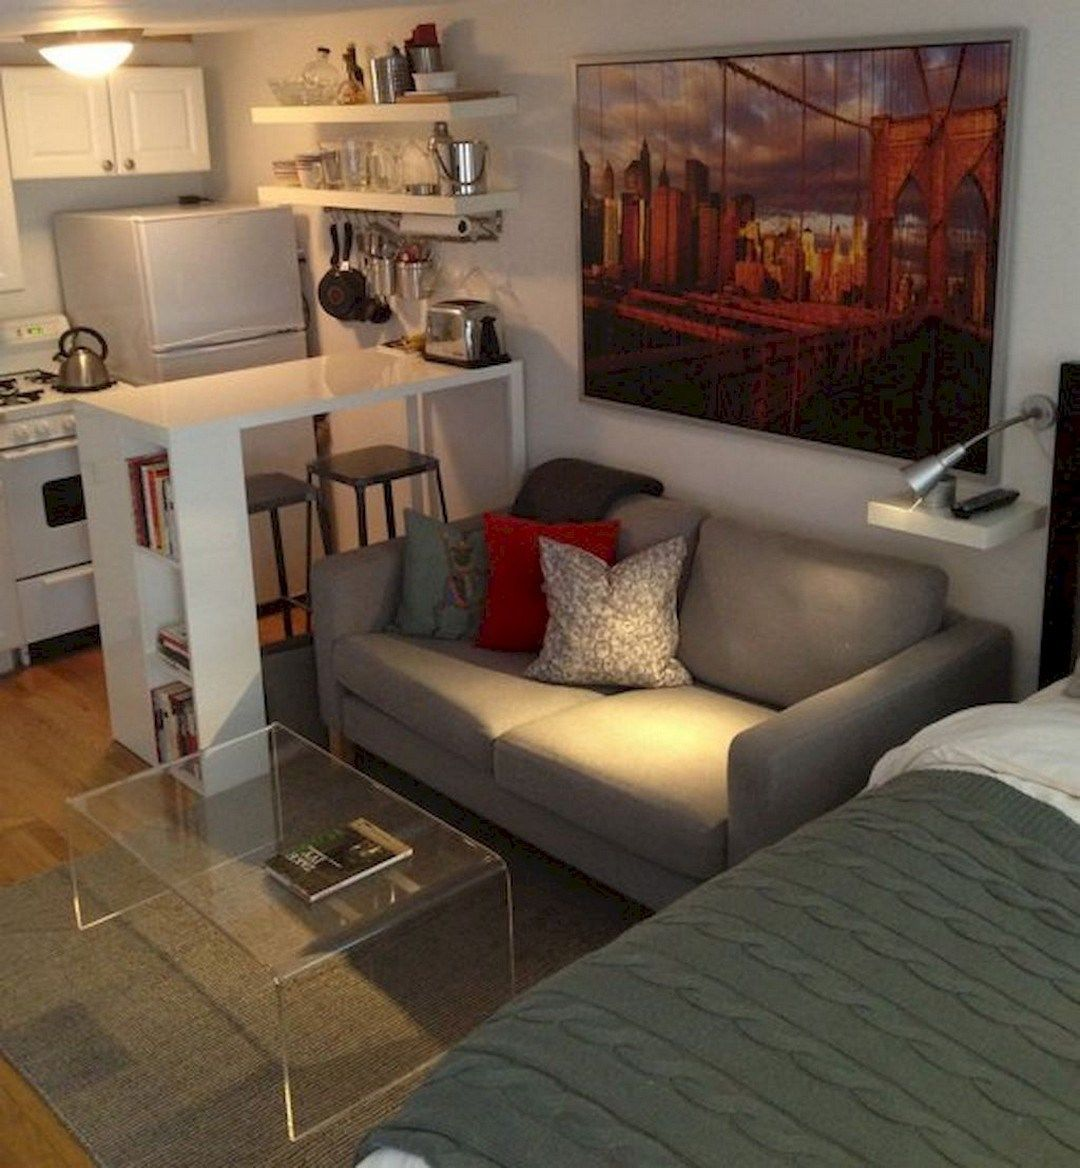 Cozy Small Apartment Decorating Ideas On A Budget 49 Decomagz Studio Apartment Decorating Small Apartment Decorating Apartment Design